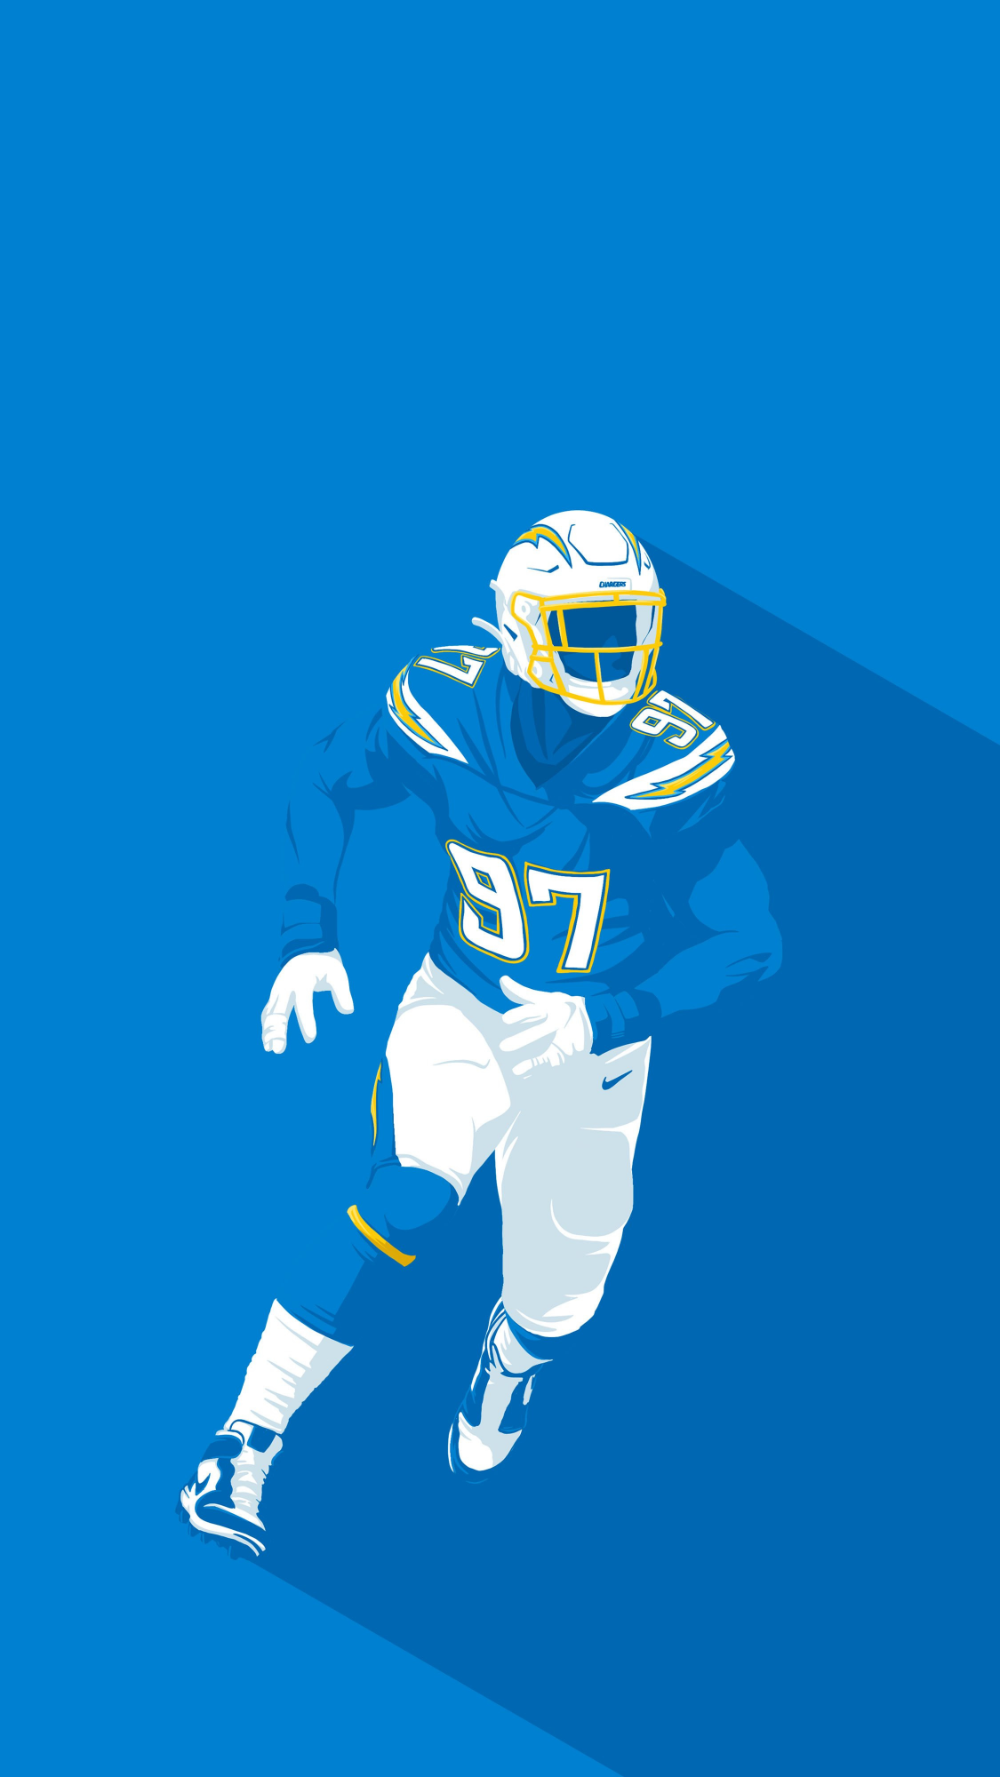 Chargers Wallpapers Los Angeles Chargers Chargers Com Nfl Football Art Los Angeles Chargers Logo Los Angeles Chargers